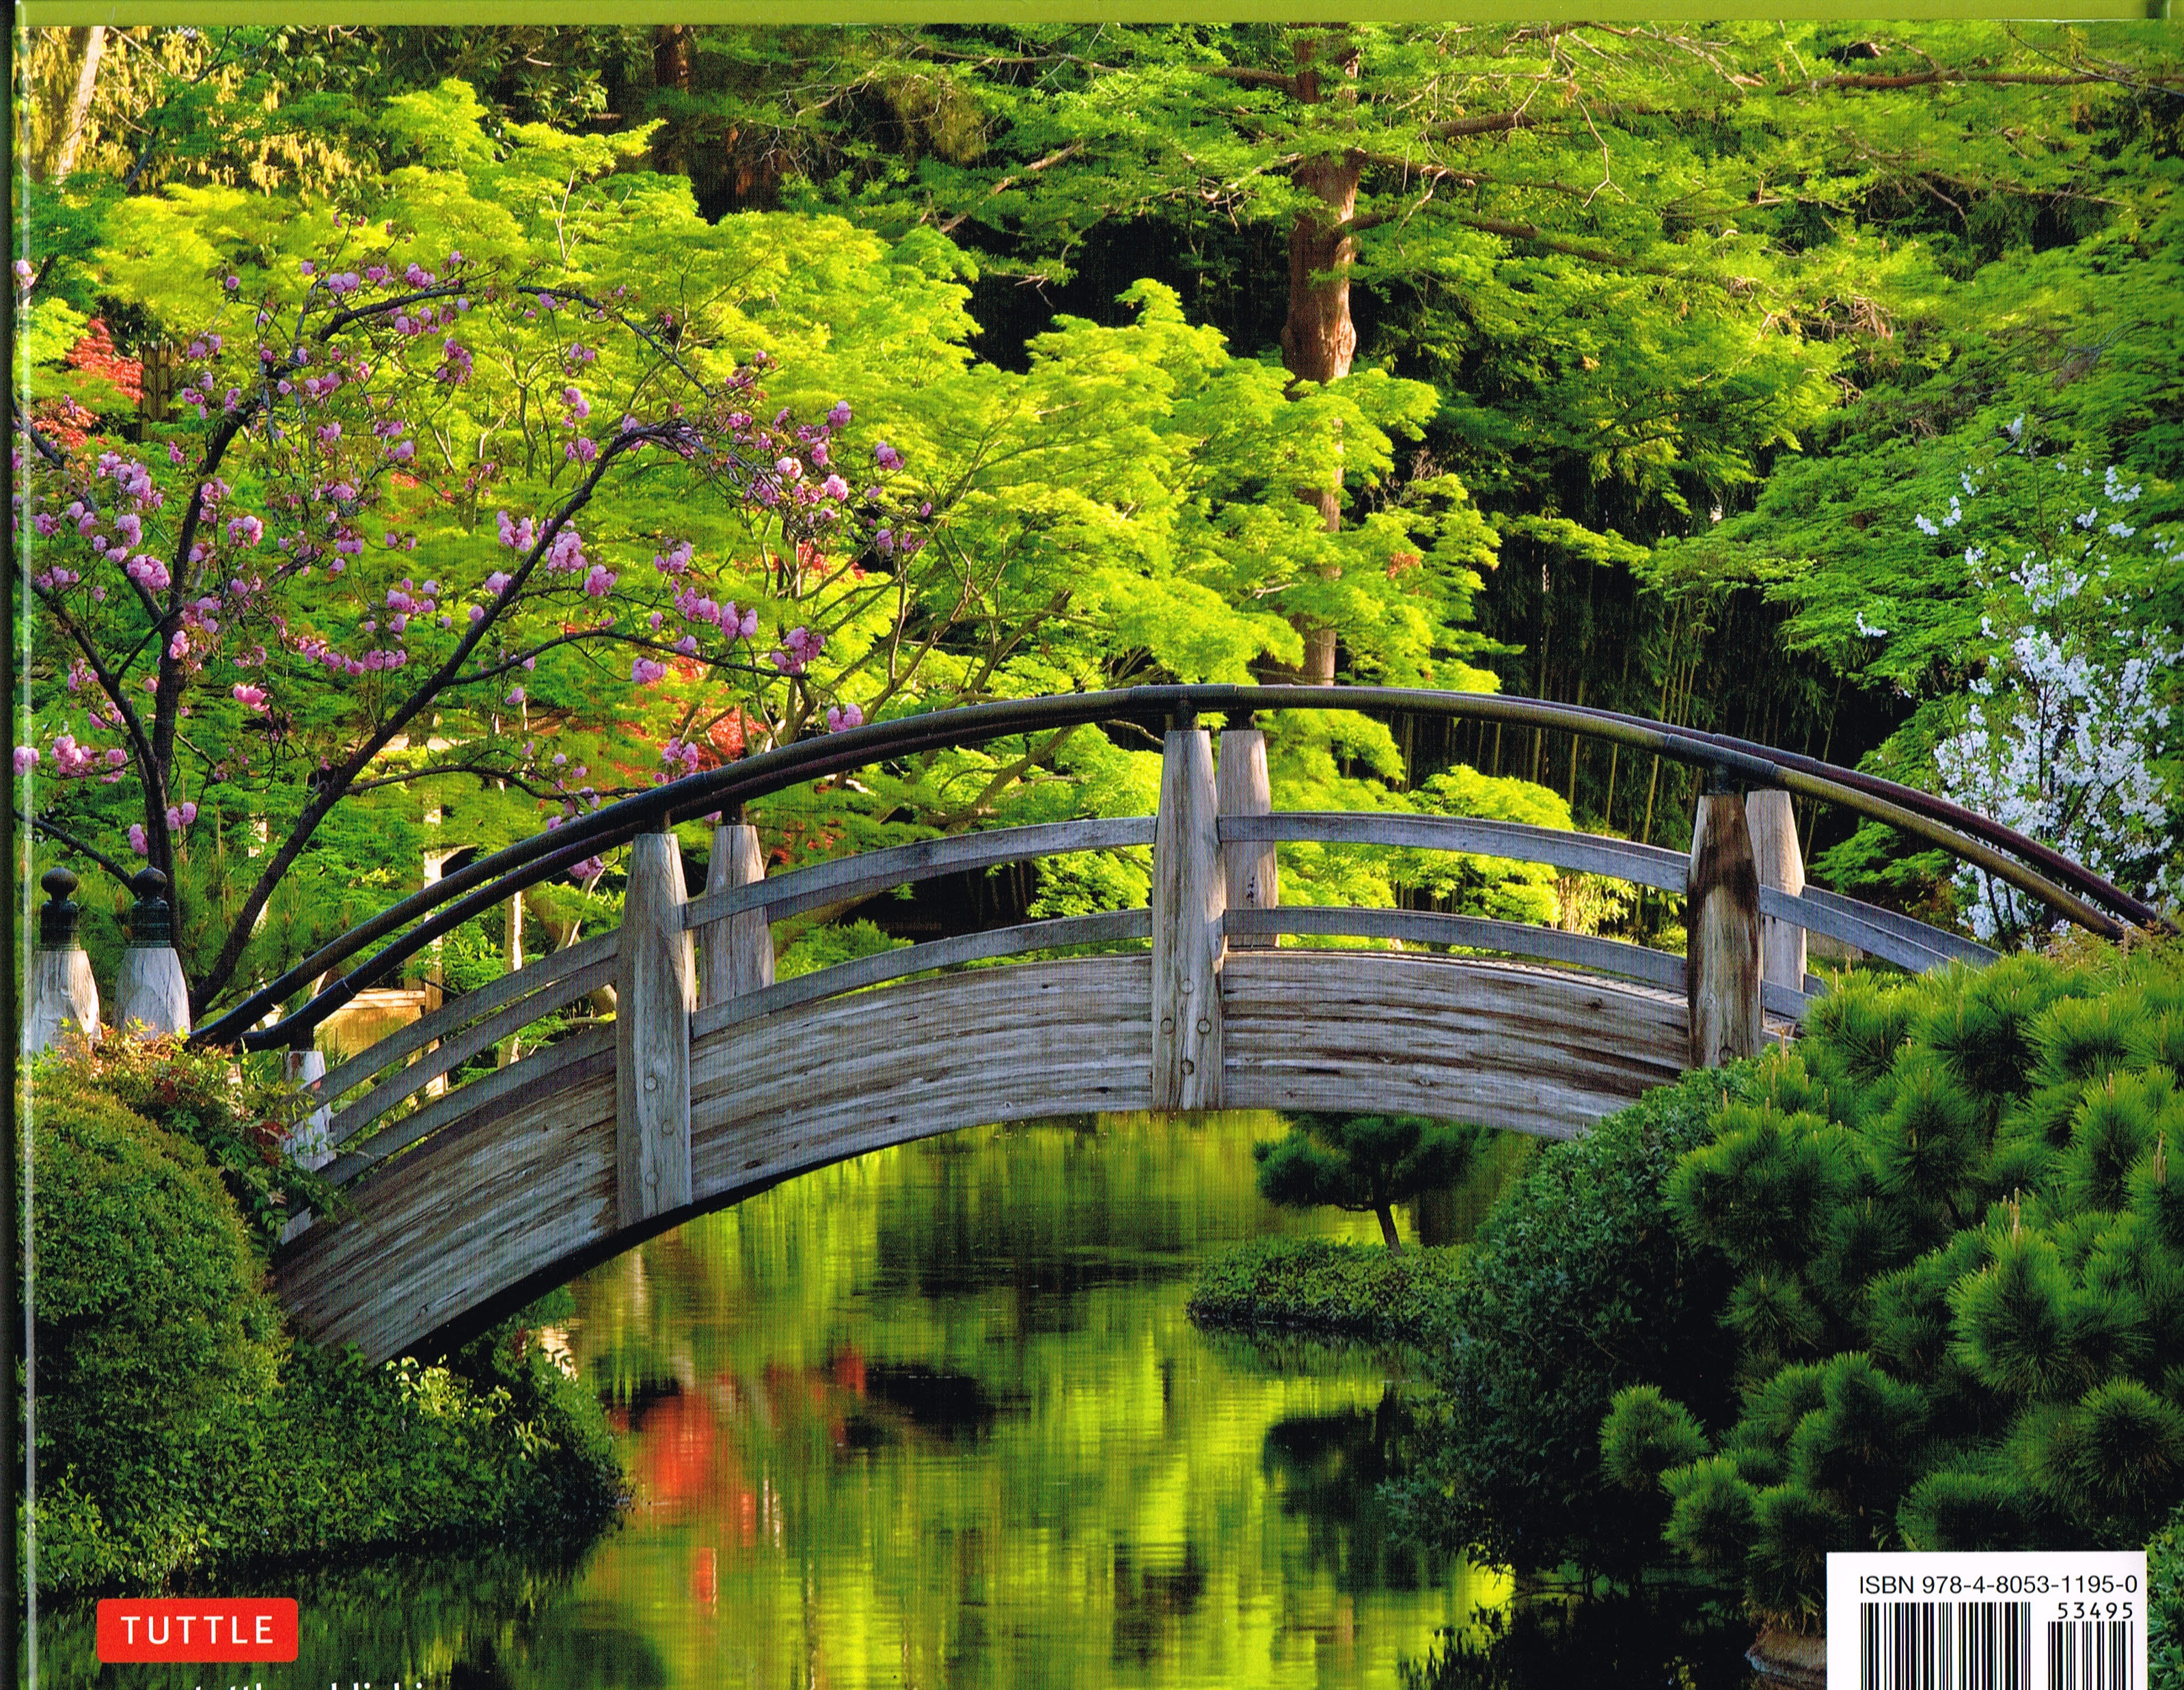 Charmant Back Cover Photo By David Cobb Of The Japanese Garden At Fort Worth Botanic  Garden In